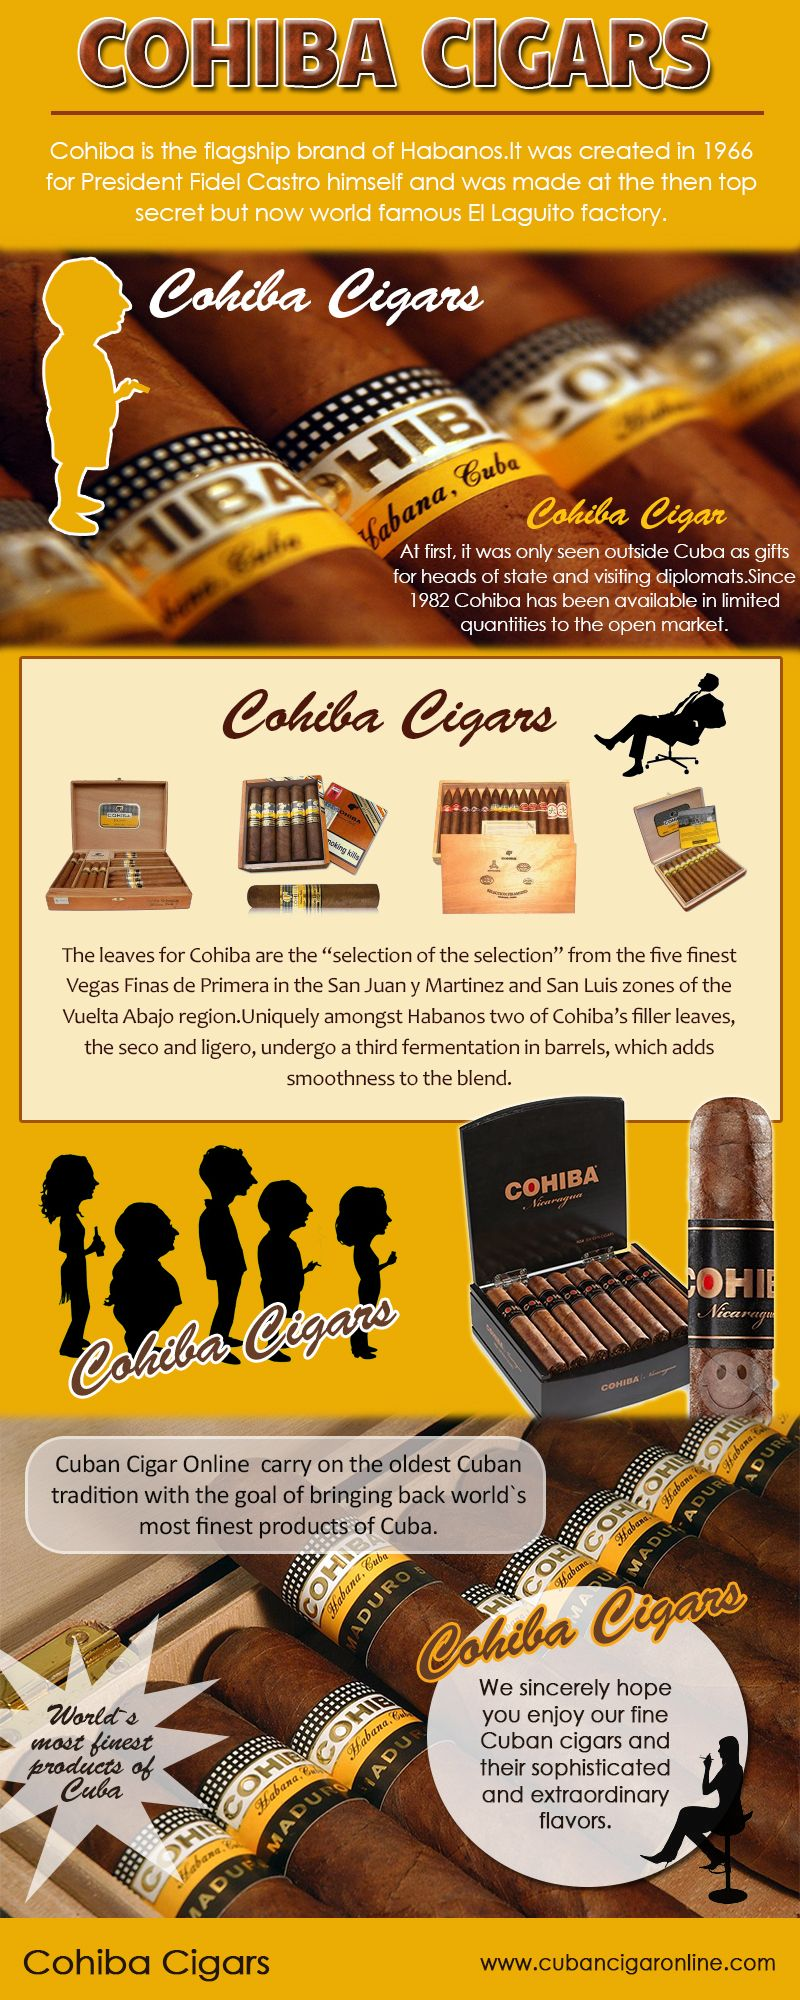 For a brand of cigars that started out with no name Cohiba Cigars have gone a long way in gaining recognition as the best cigar in the world. Browse this site http://www.cubancigaronline.com/cuban-cigars/cohiba-cuban-cigar for more information on Cohiba cigars. Cigars, like people, grow old. But cigars, unlike people, are smoked. Depending on when they are smoked, the flavor and experience can greatly differ. Therefore choose the best Cohiba cigars.